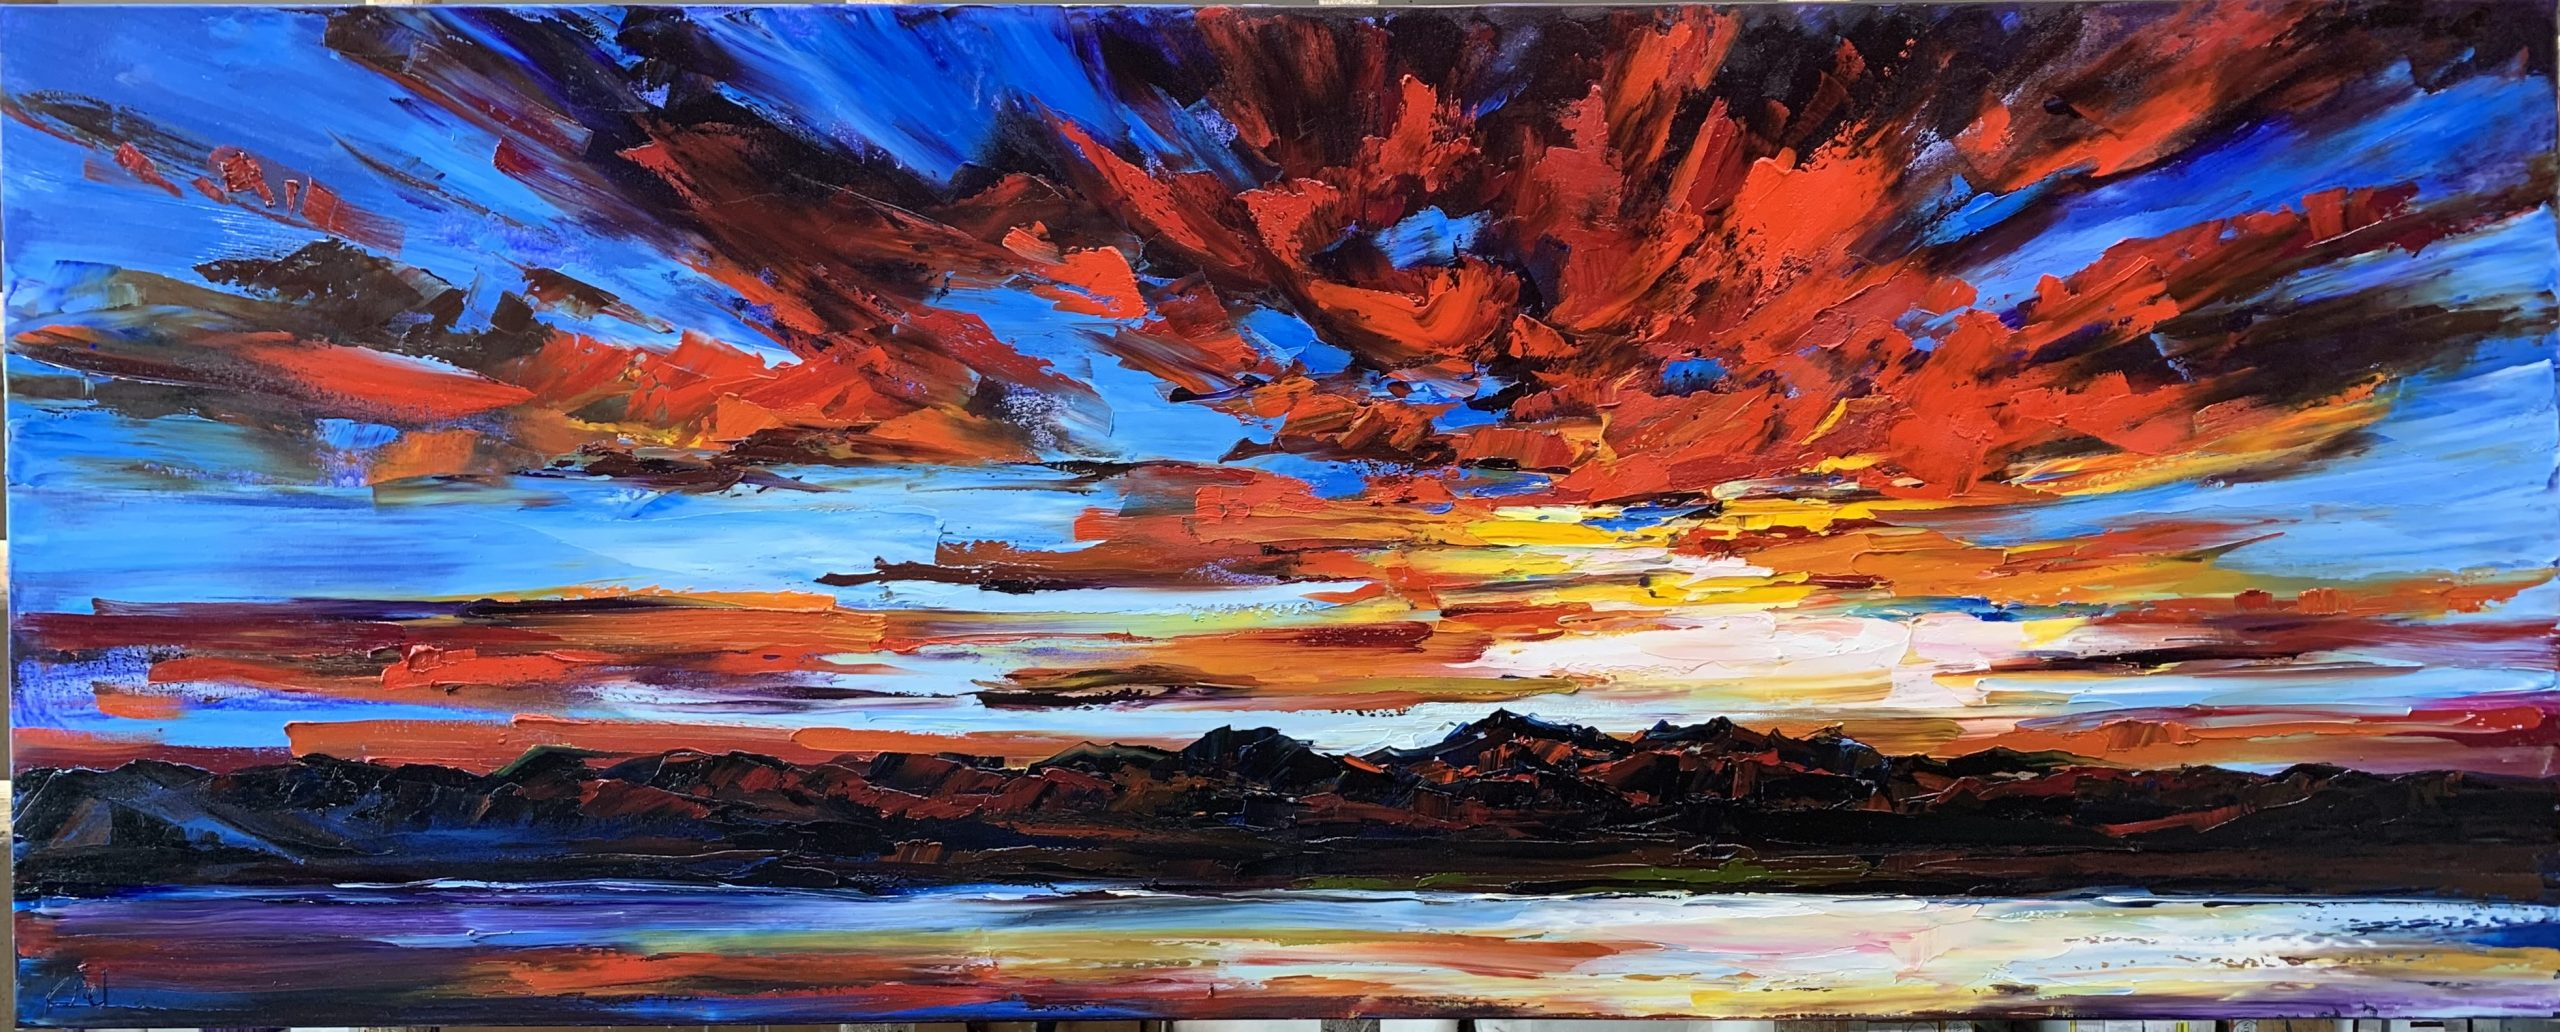 Once in a Blue Moon, sunset painting by Kimberly Kiel | Effusion Art Gallery + Cast Glass Studio, Invermere BC